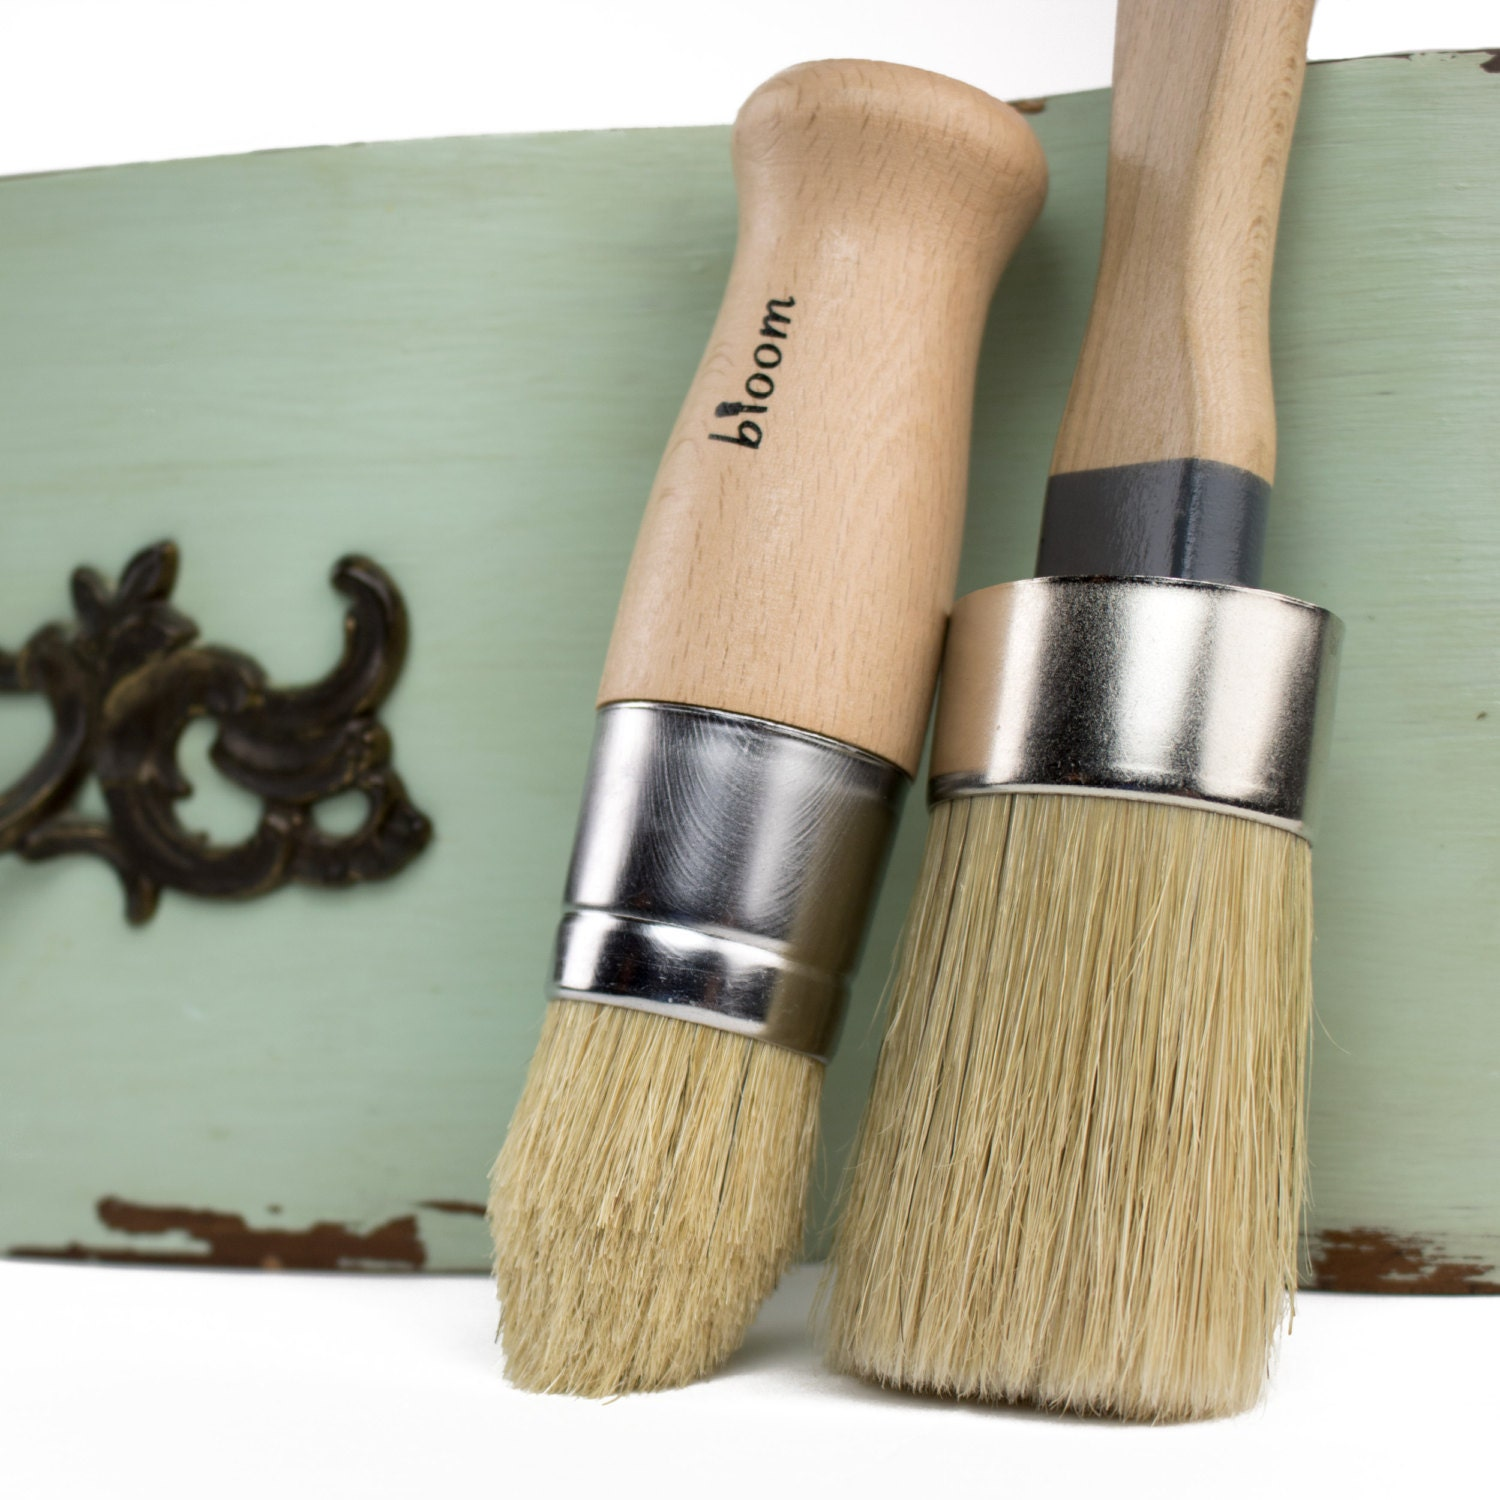 Chalk paint brush set with oval shaped brush and pointed for Chalk paint comparable to annie sloan